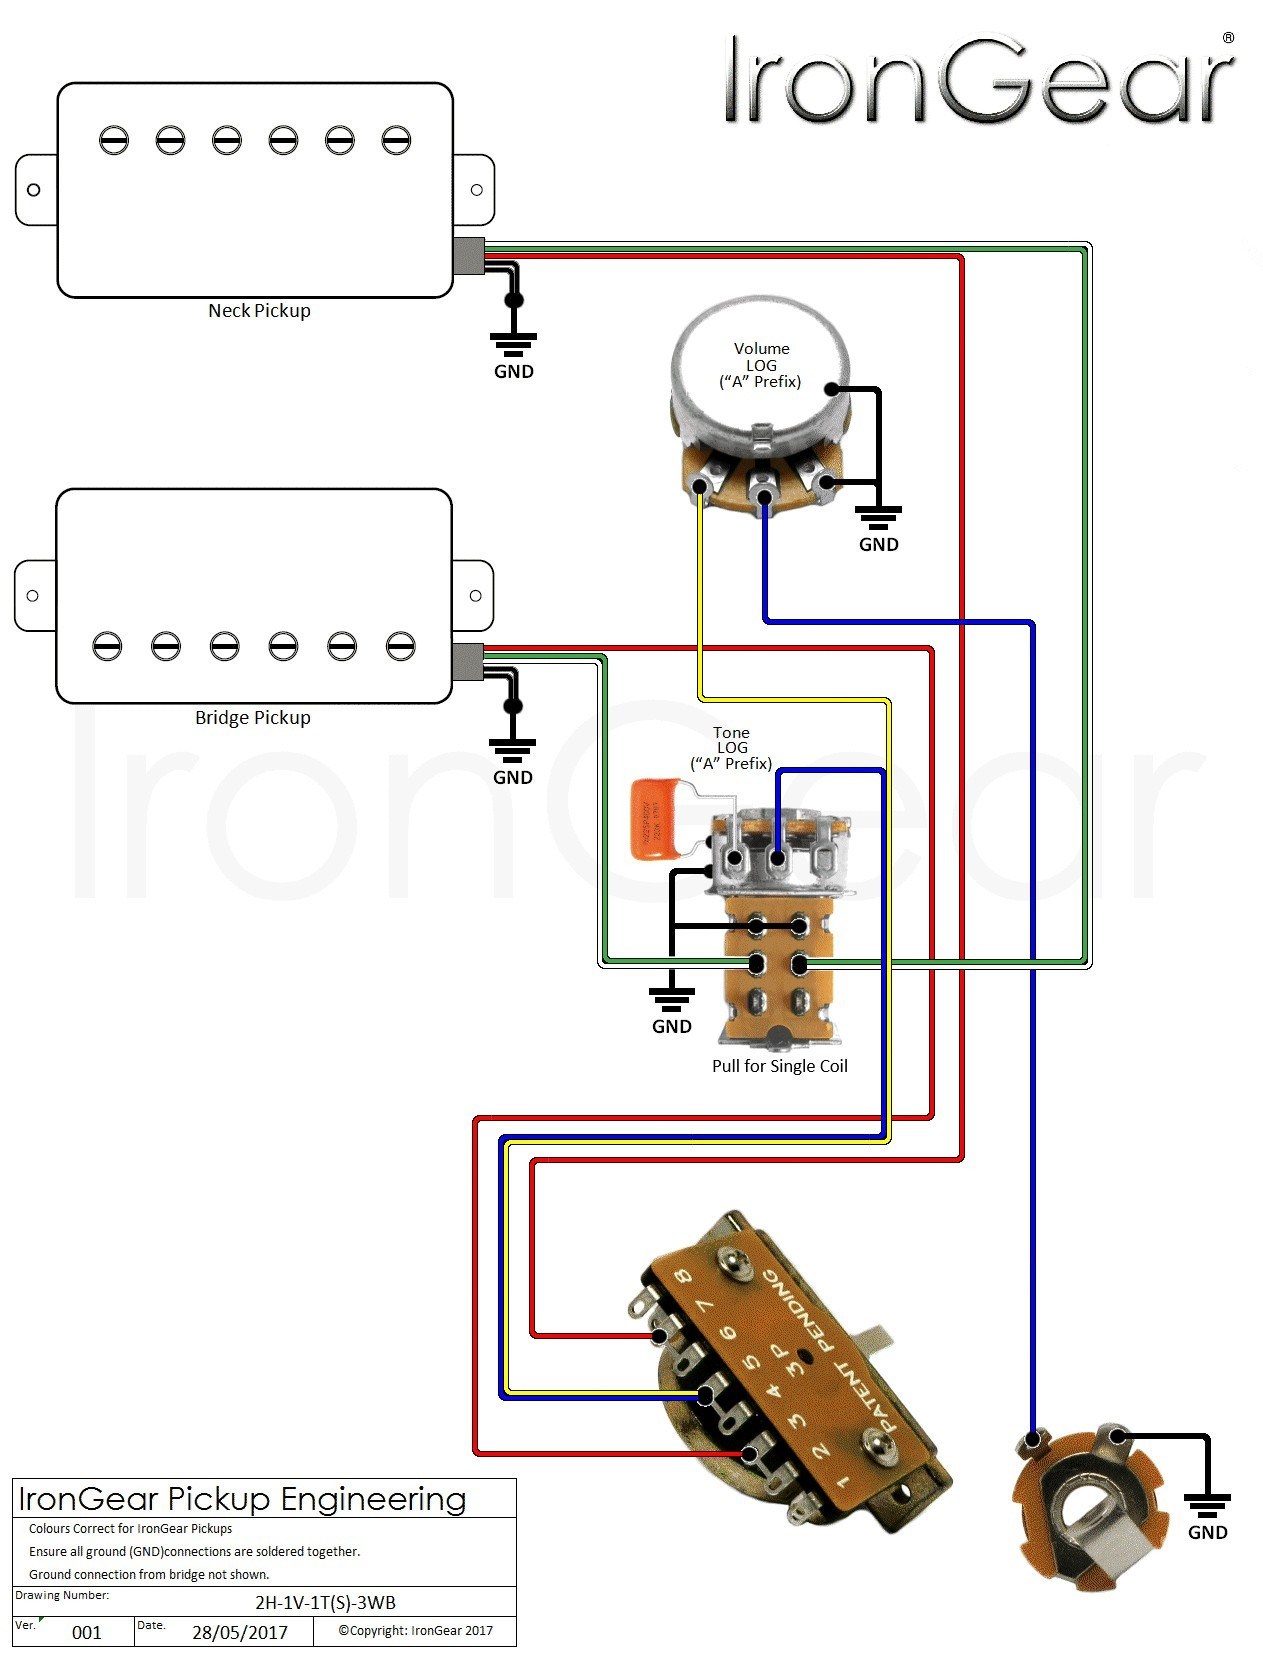 Wiring Diagram For e Pickup Guitar Refrence Electric Guitar Wiring Diagram E Pickup New Irongear Pickups